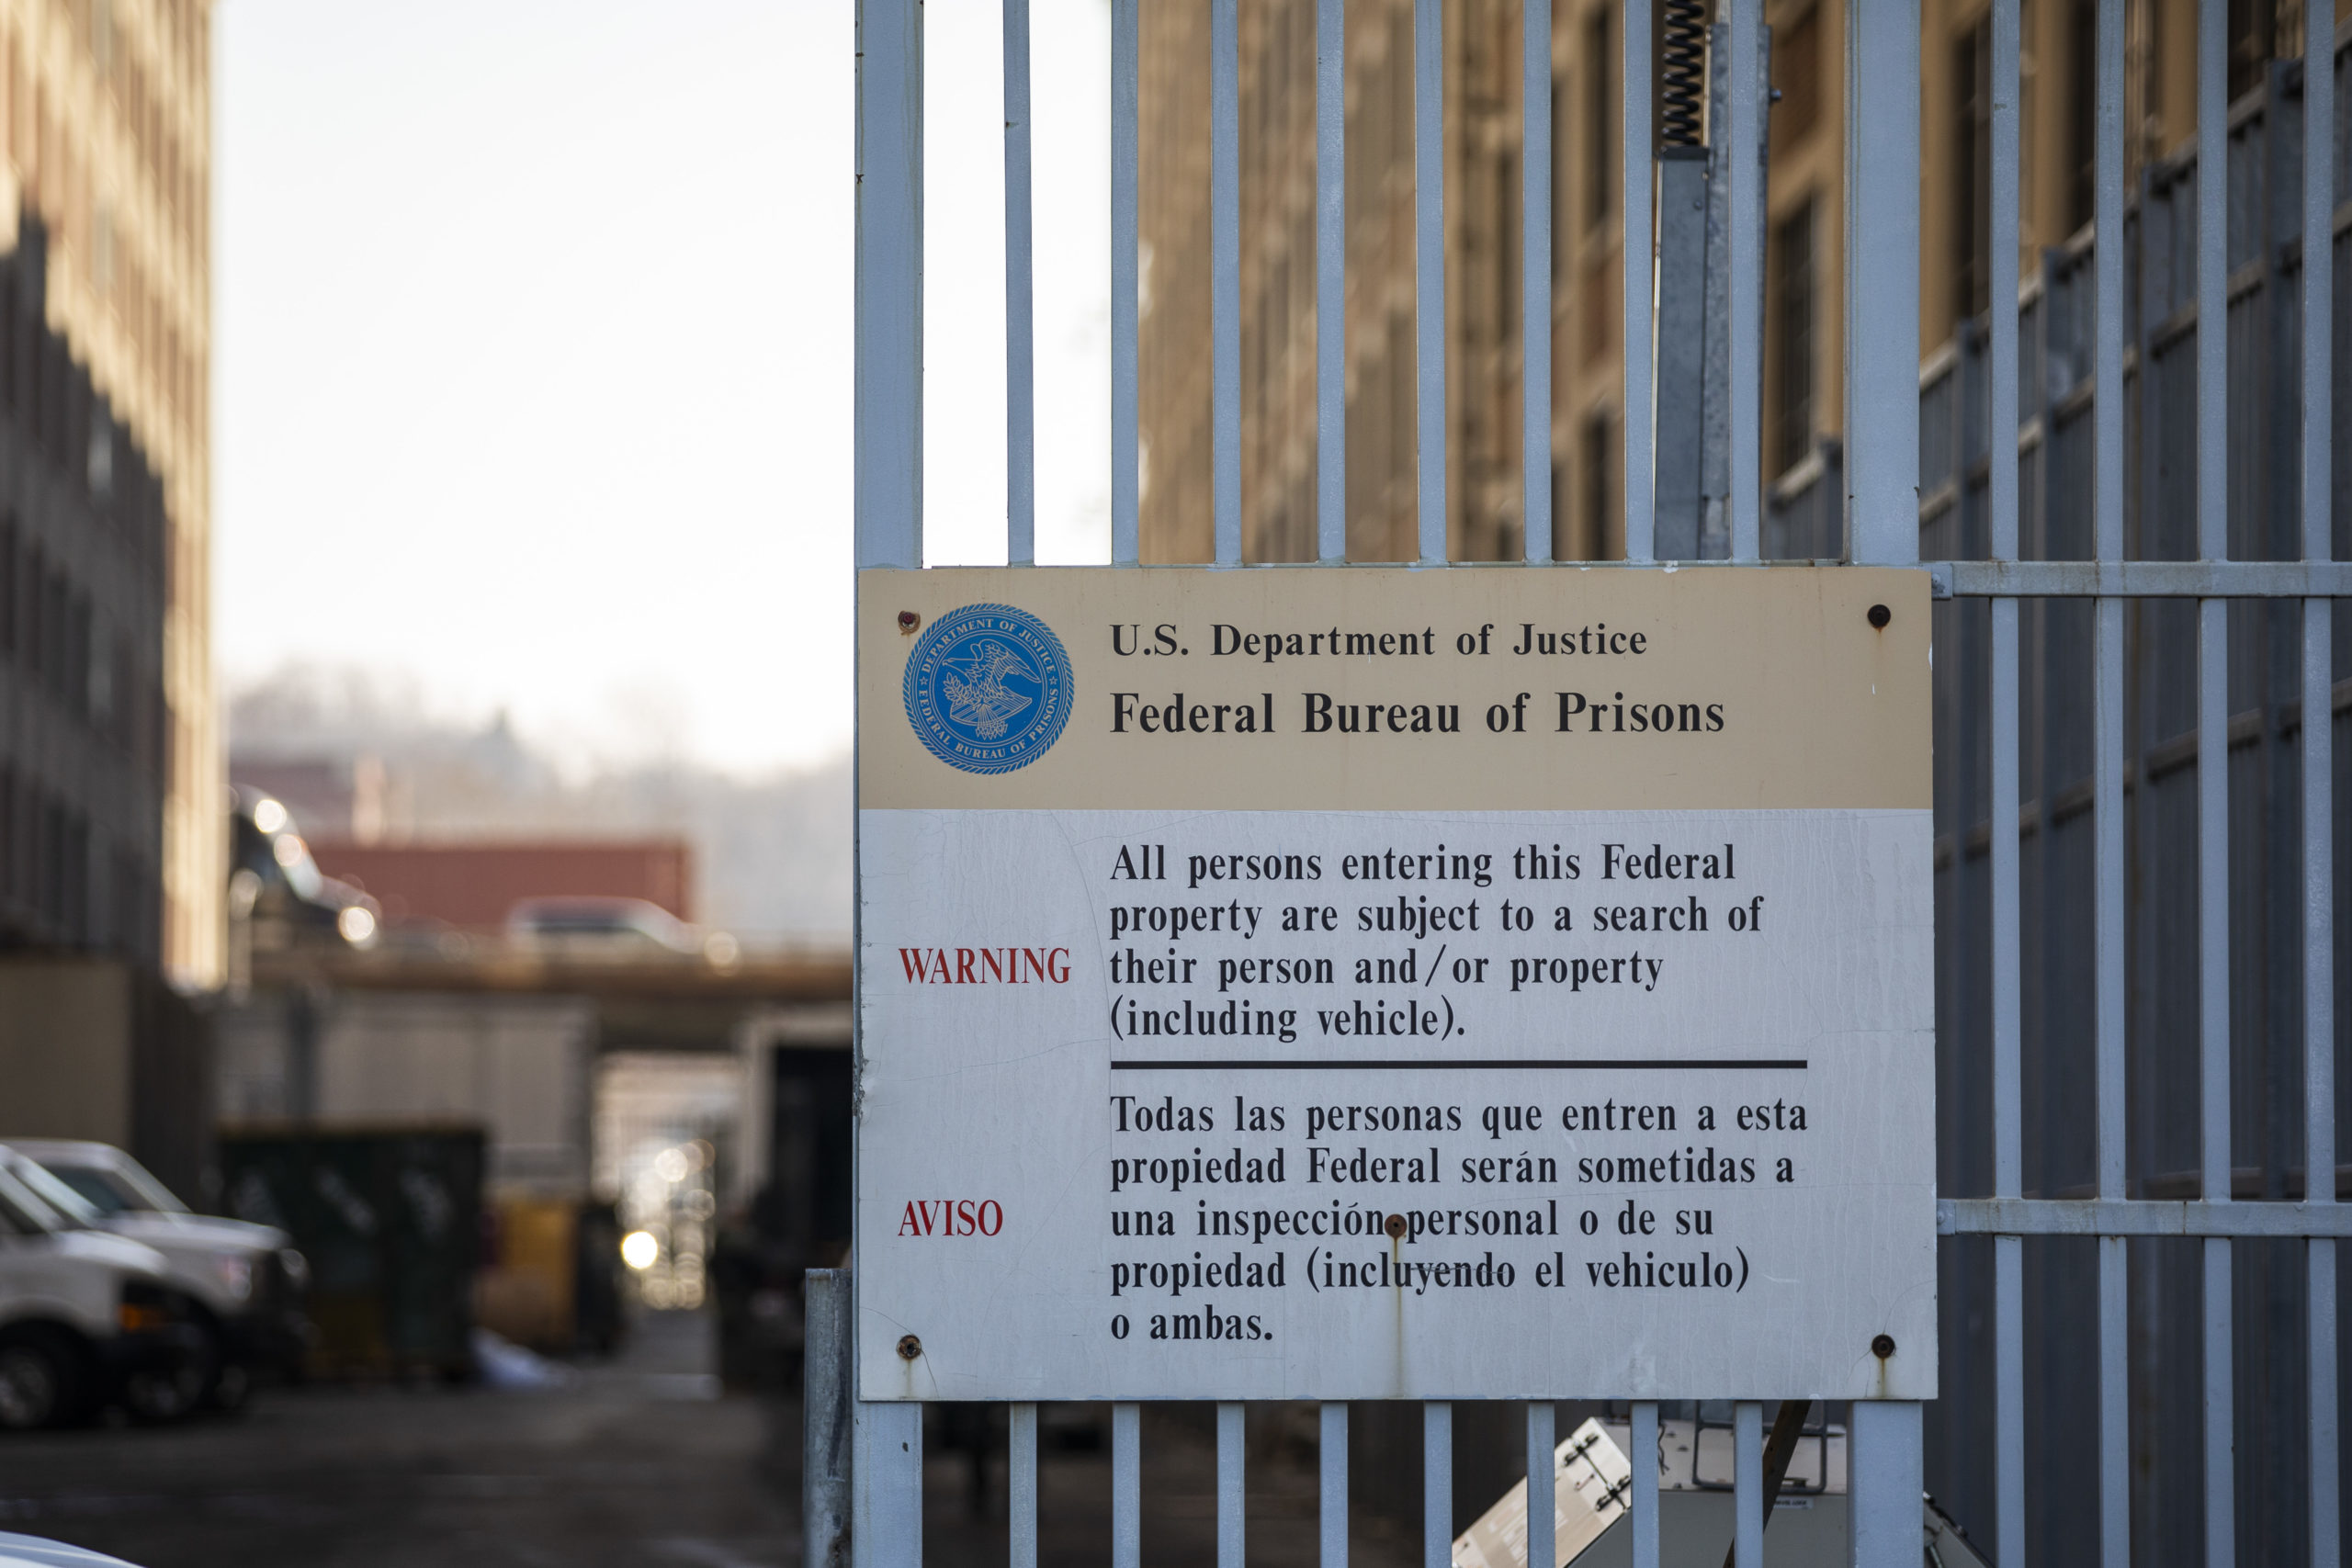 NEW YORK, NY - FEBRUARY 04: A sign is posted outside the Metropolitan Detention Center on February 4, 2019 in the Brooklyn borough of New York City. Power has been fully restored to the prison after inmates suffered the past week without heat and access to televisions, computers or telephones. On Monday morning, the facility received a bomb threat following a weekend of protests. (Photo by Drew Angerer/Getty Images)